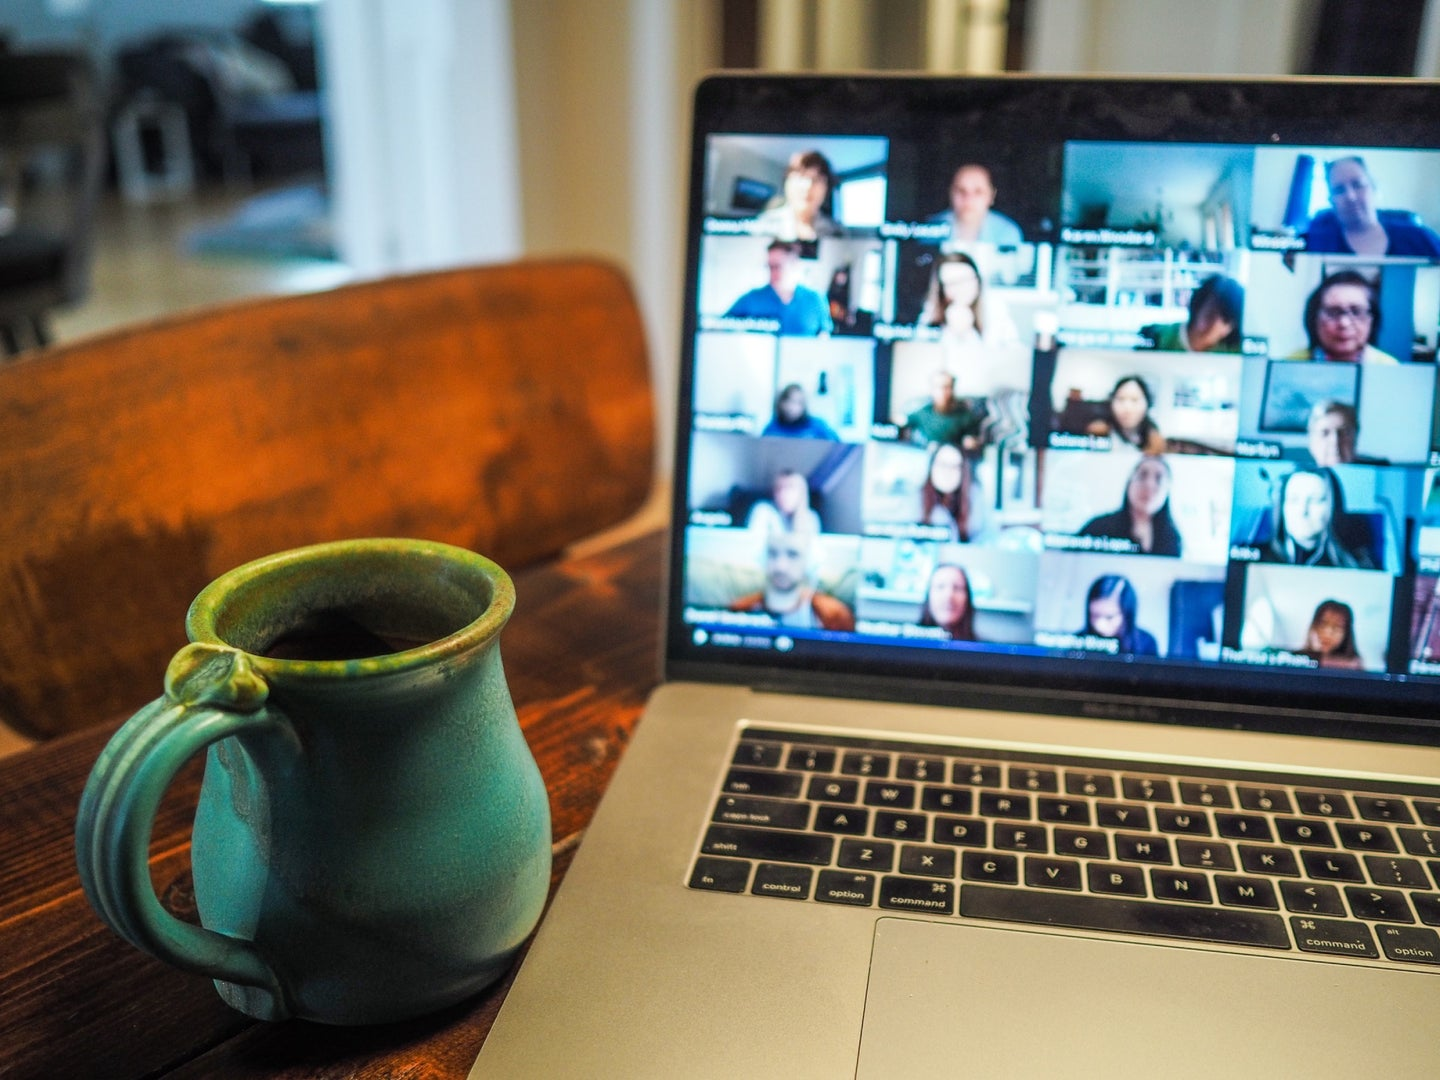 a mug of coffee or tea next to a laptop with Zoom open